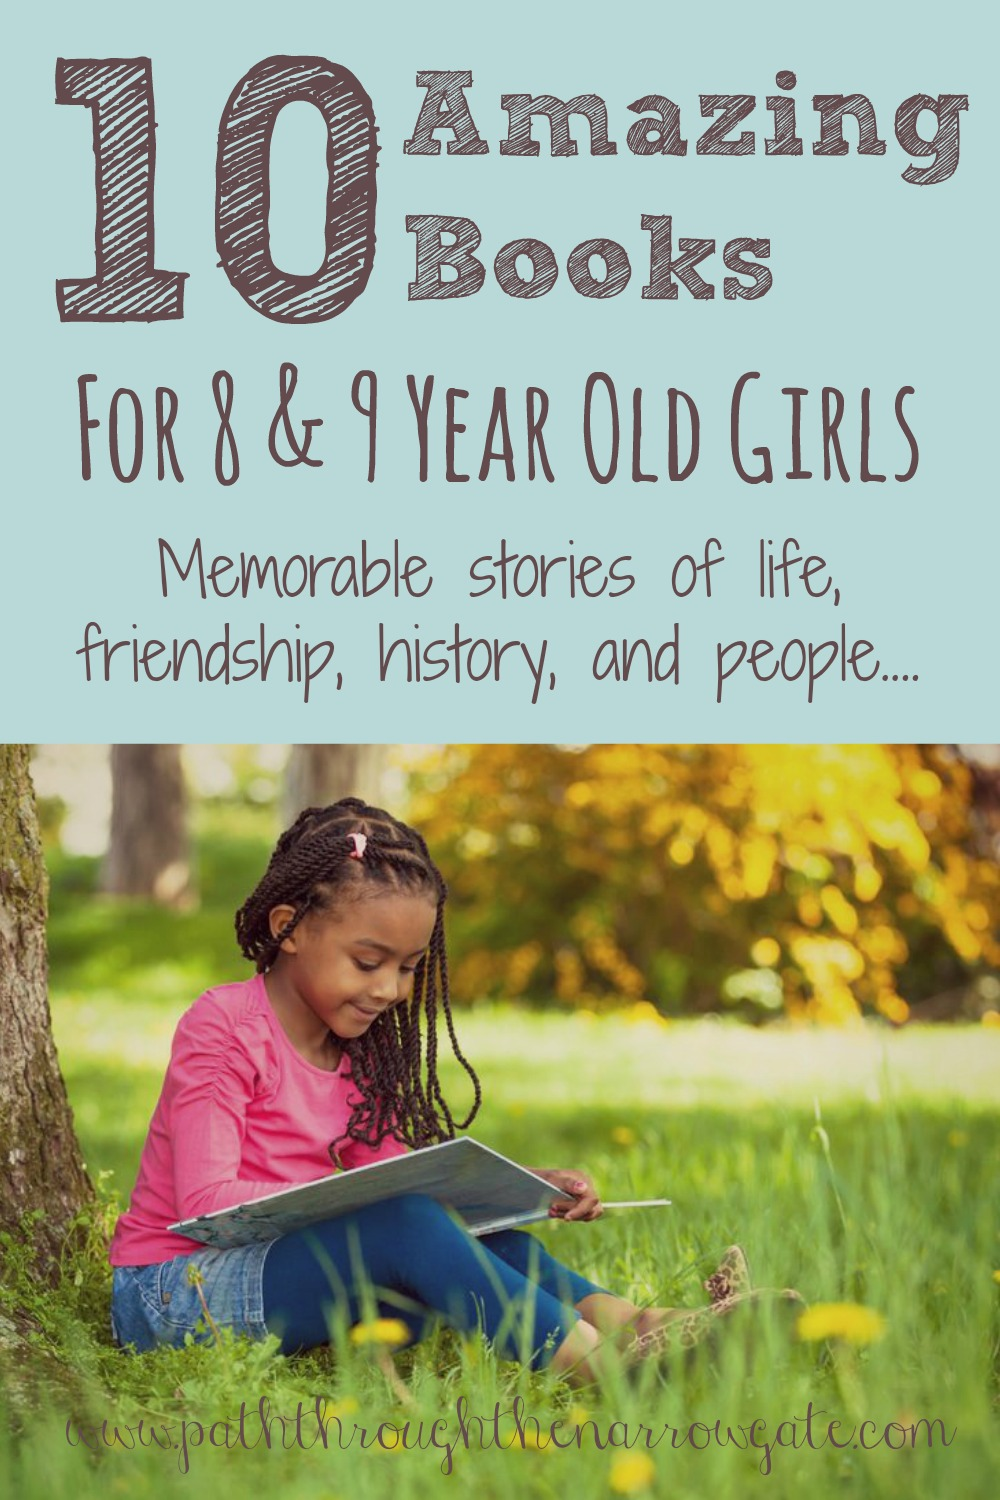 This list includes some of the books I remember reading when I was growing up. I can't wait to share these with my girls!